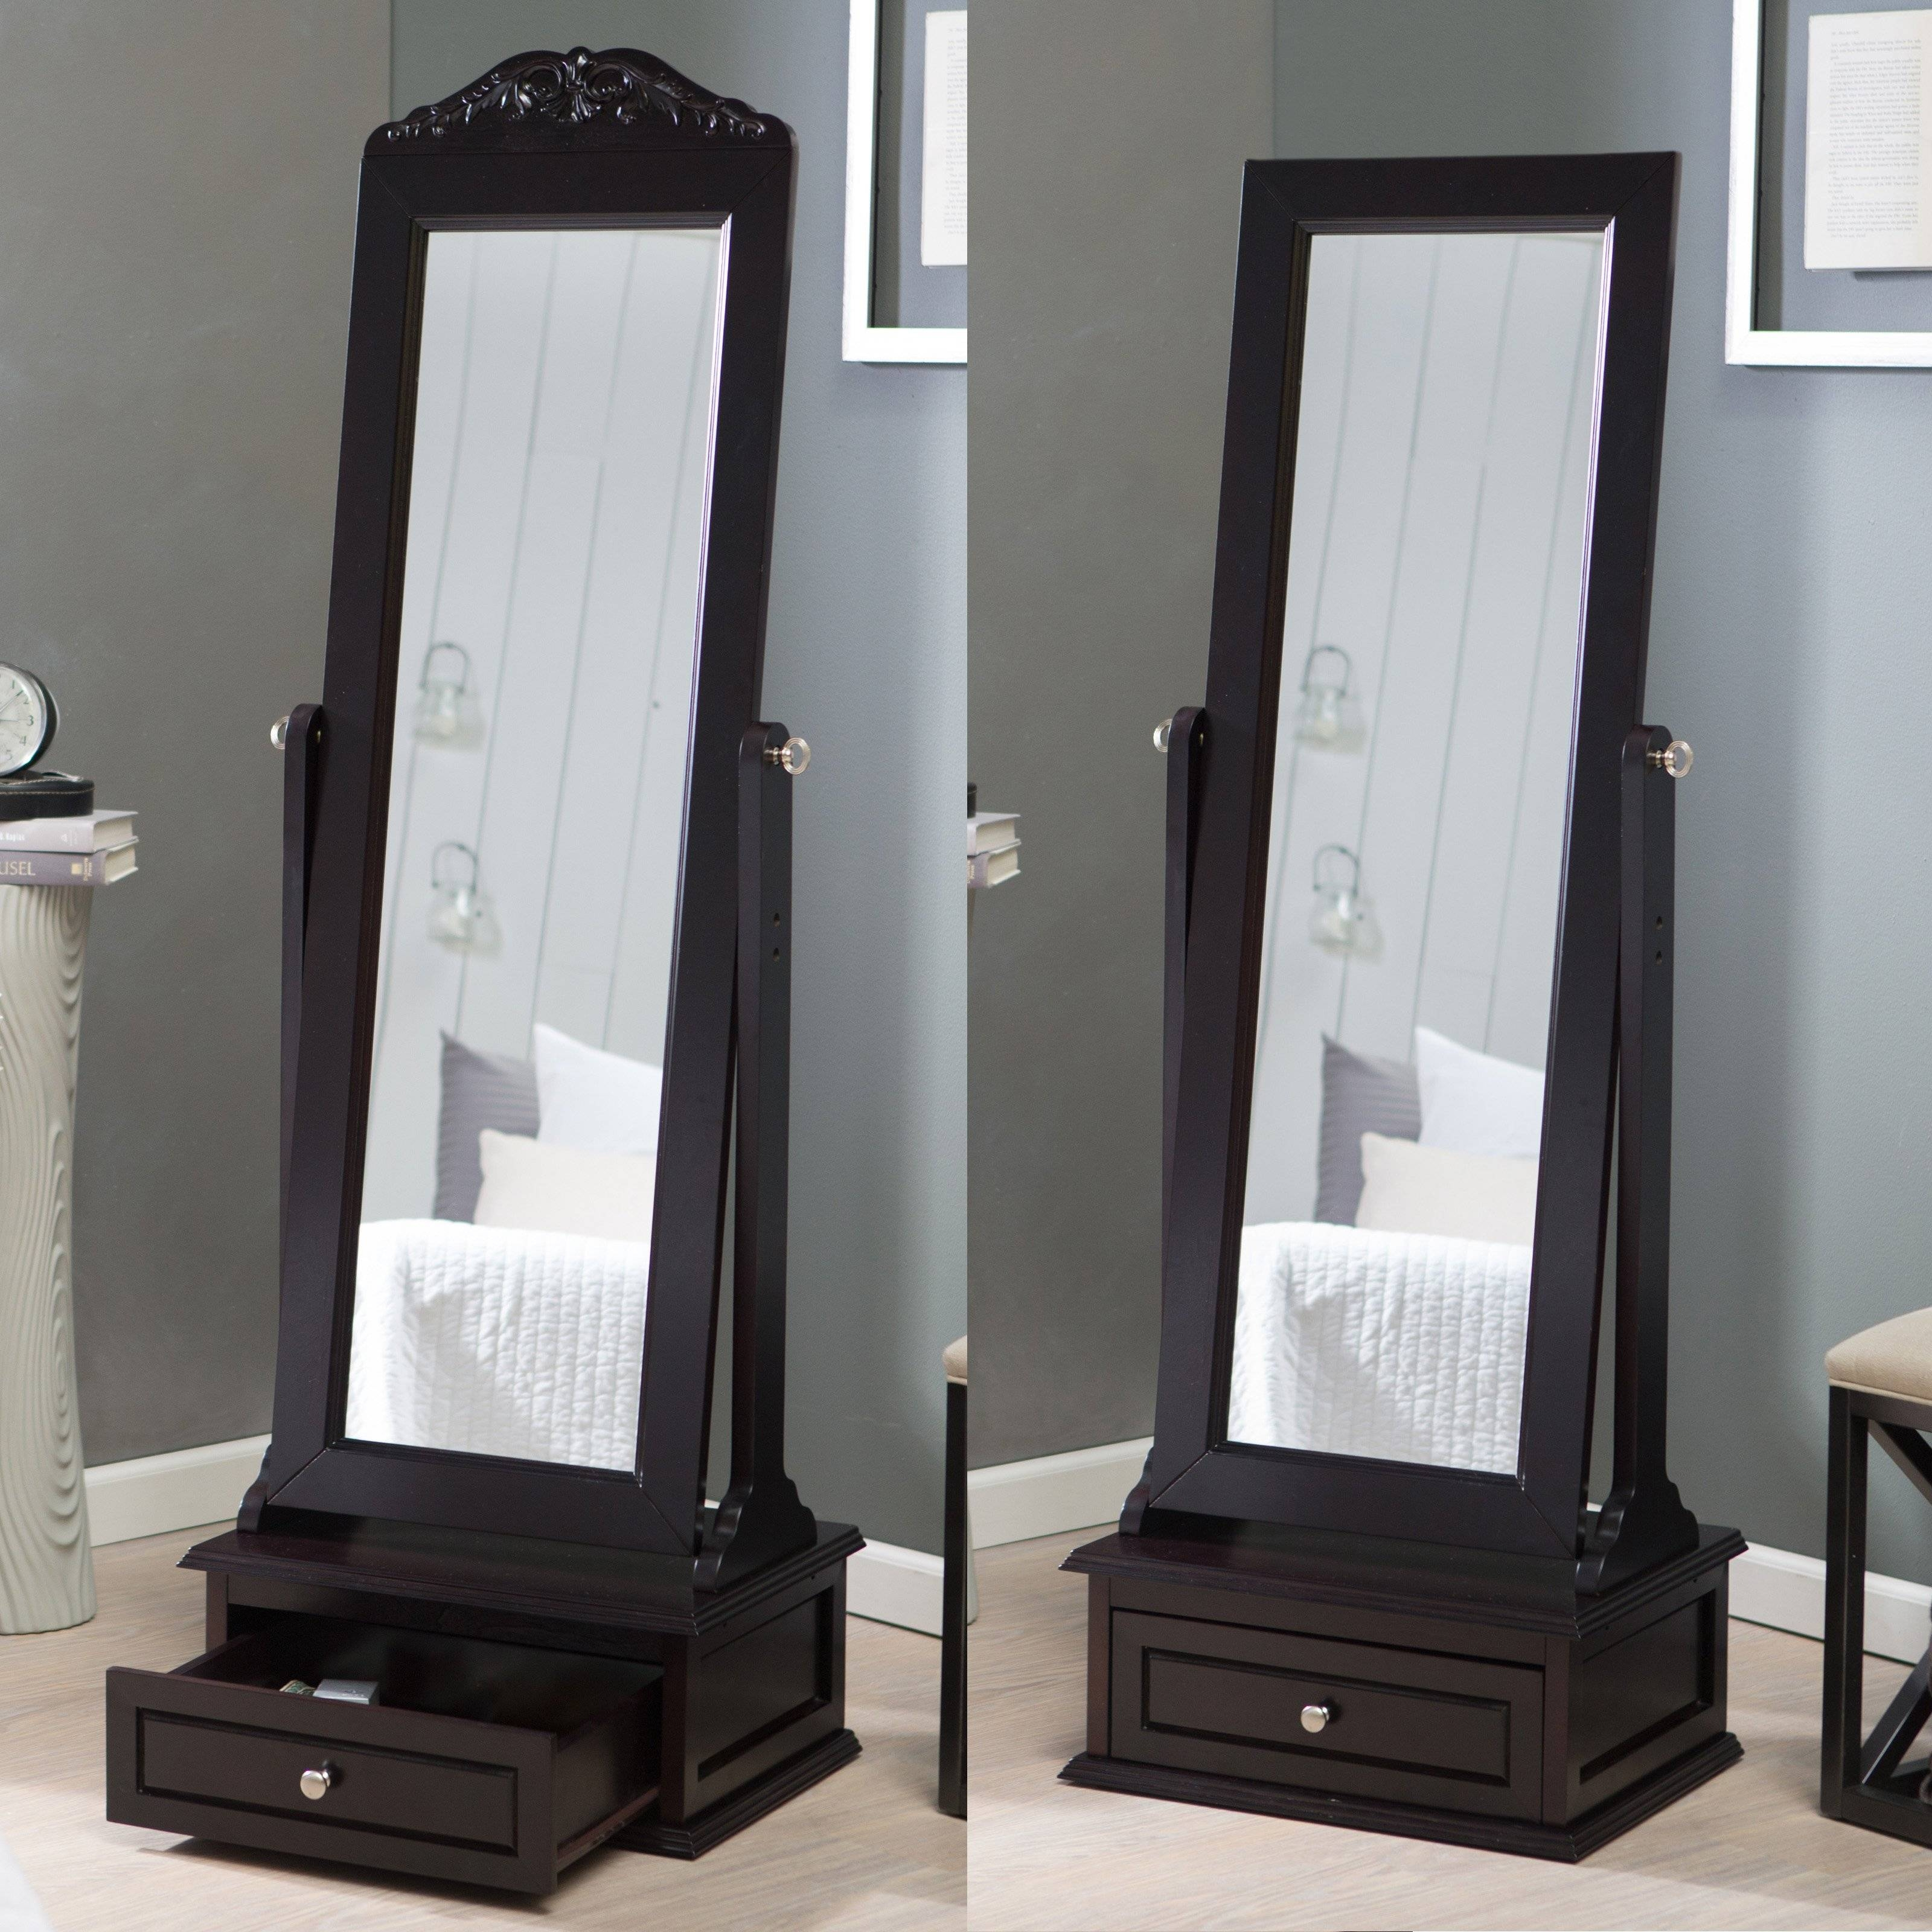 Decorative Full Length Mirror – Harpsounds.co regarding Full Length Decorative Mirrors (Image 8 of 25)